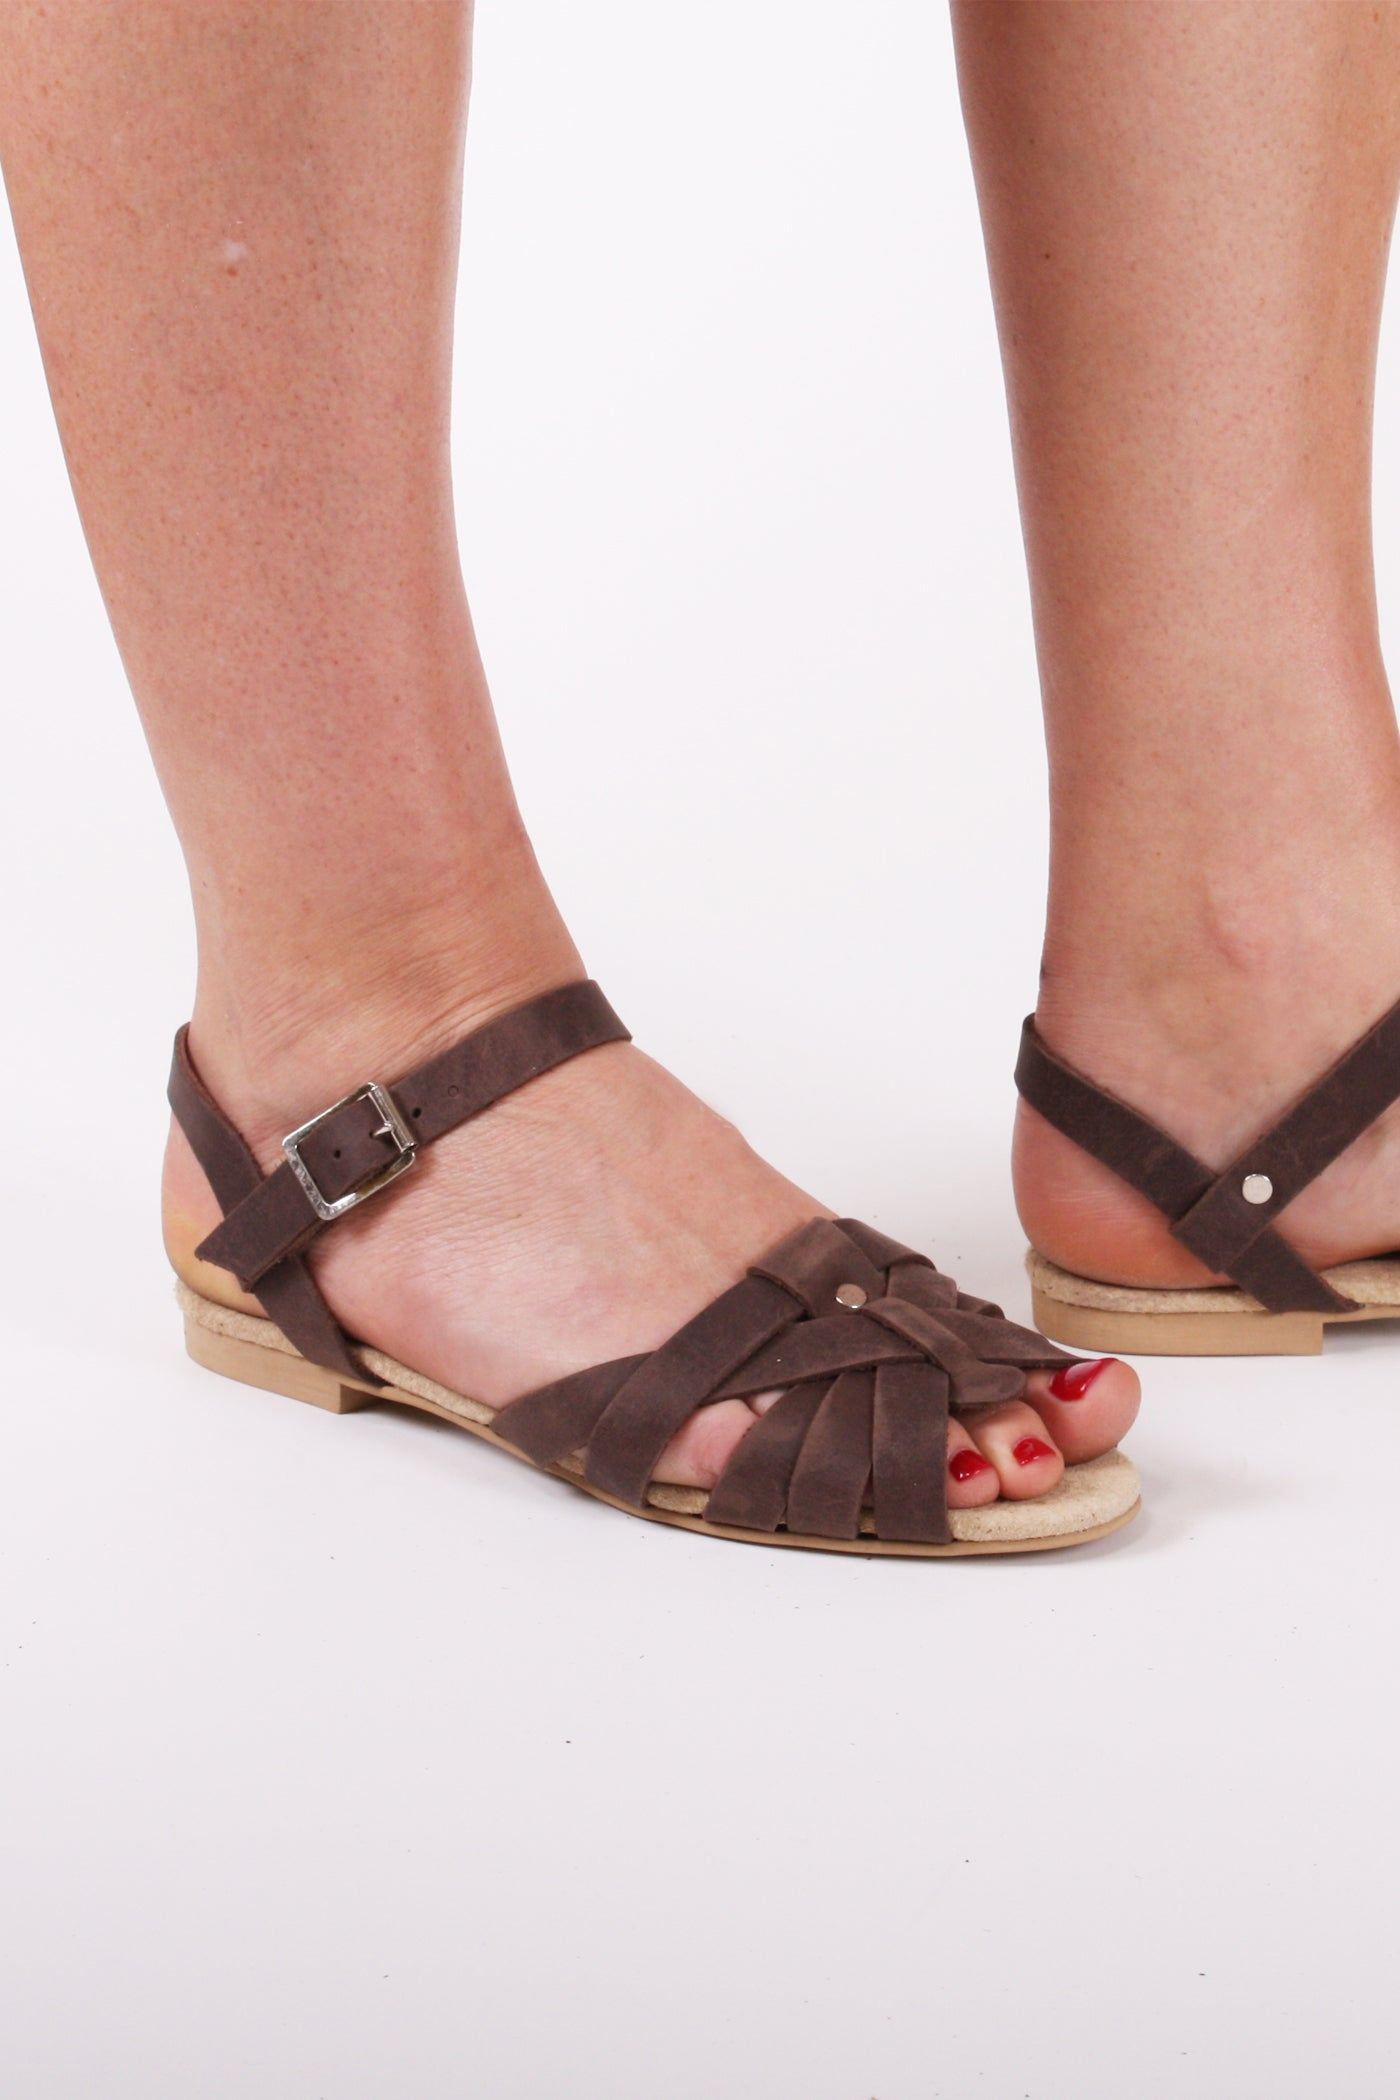 Goodie-Two-Shoes Star Sandals (sizes available 4)